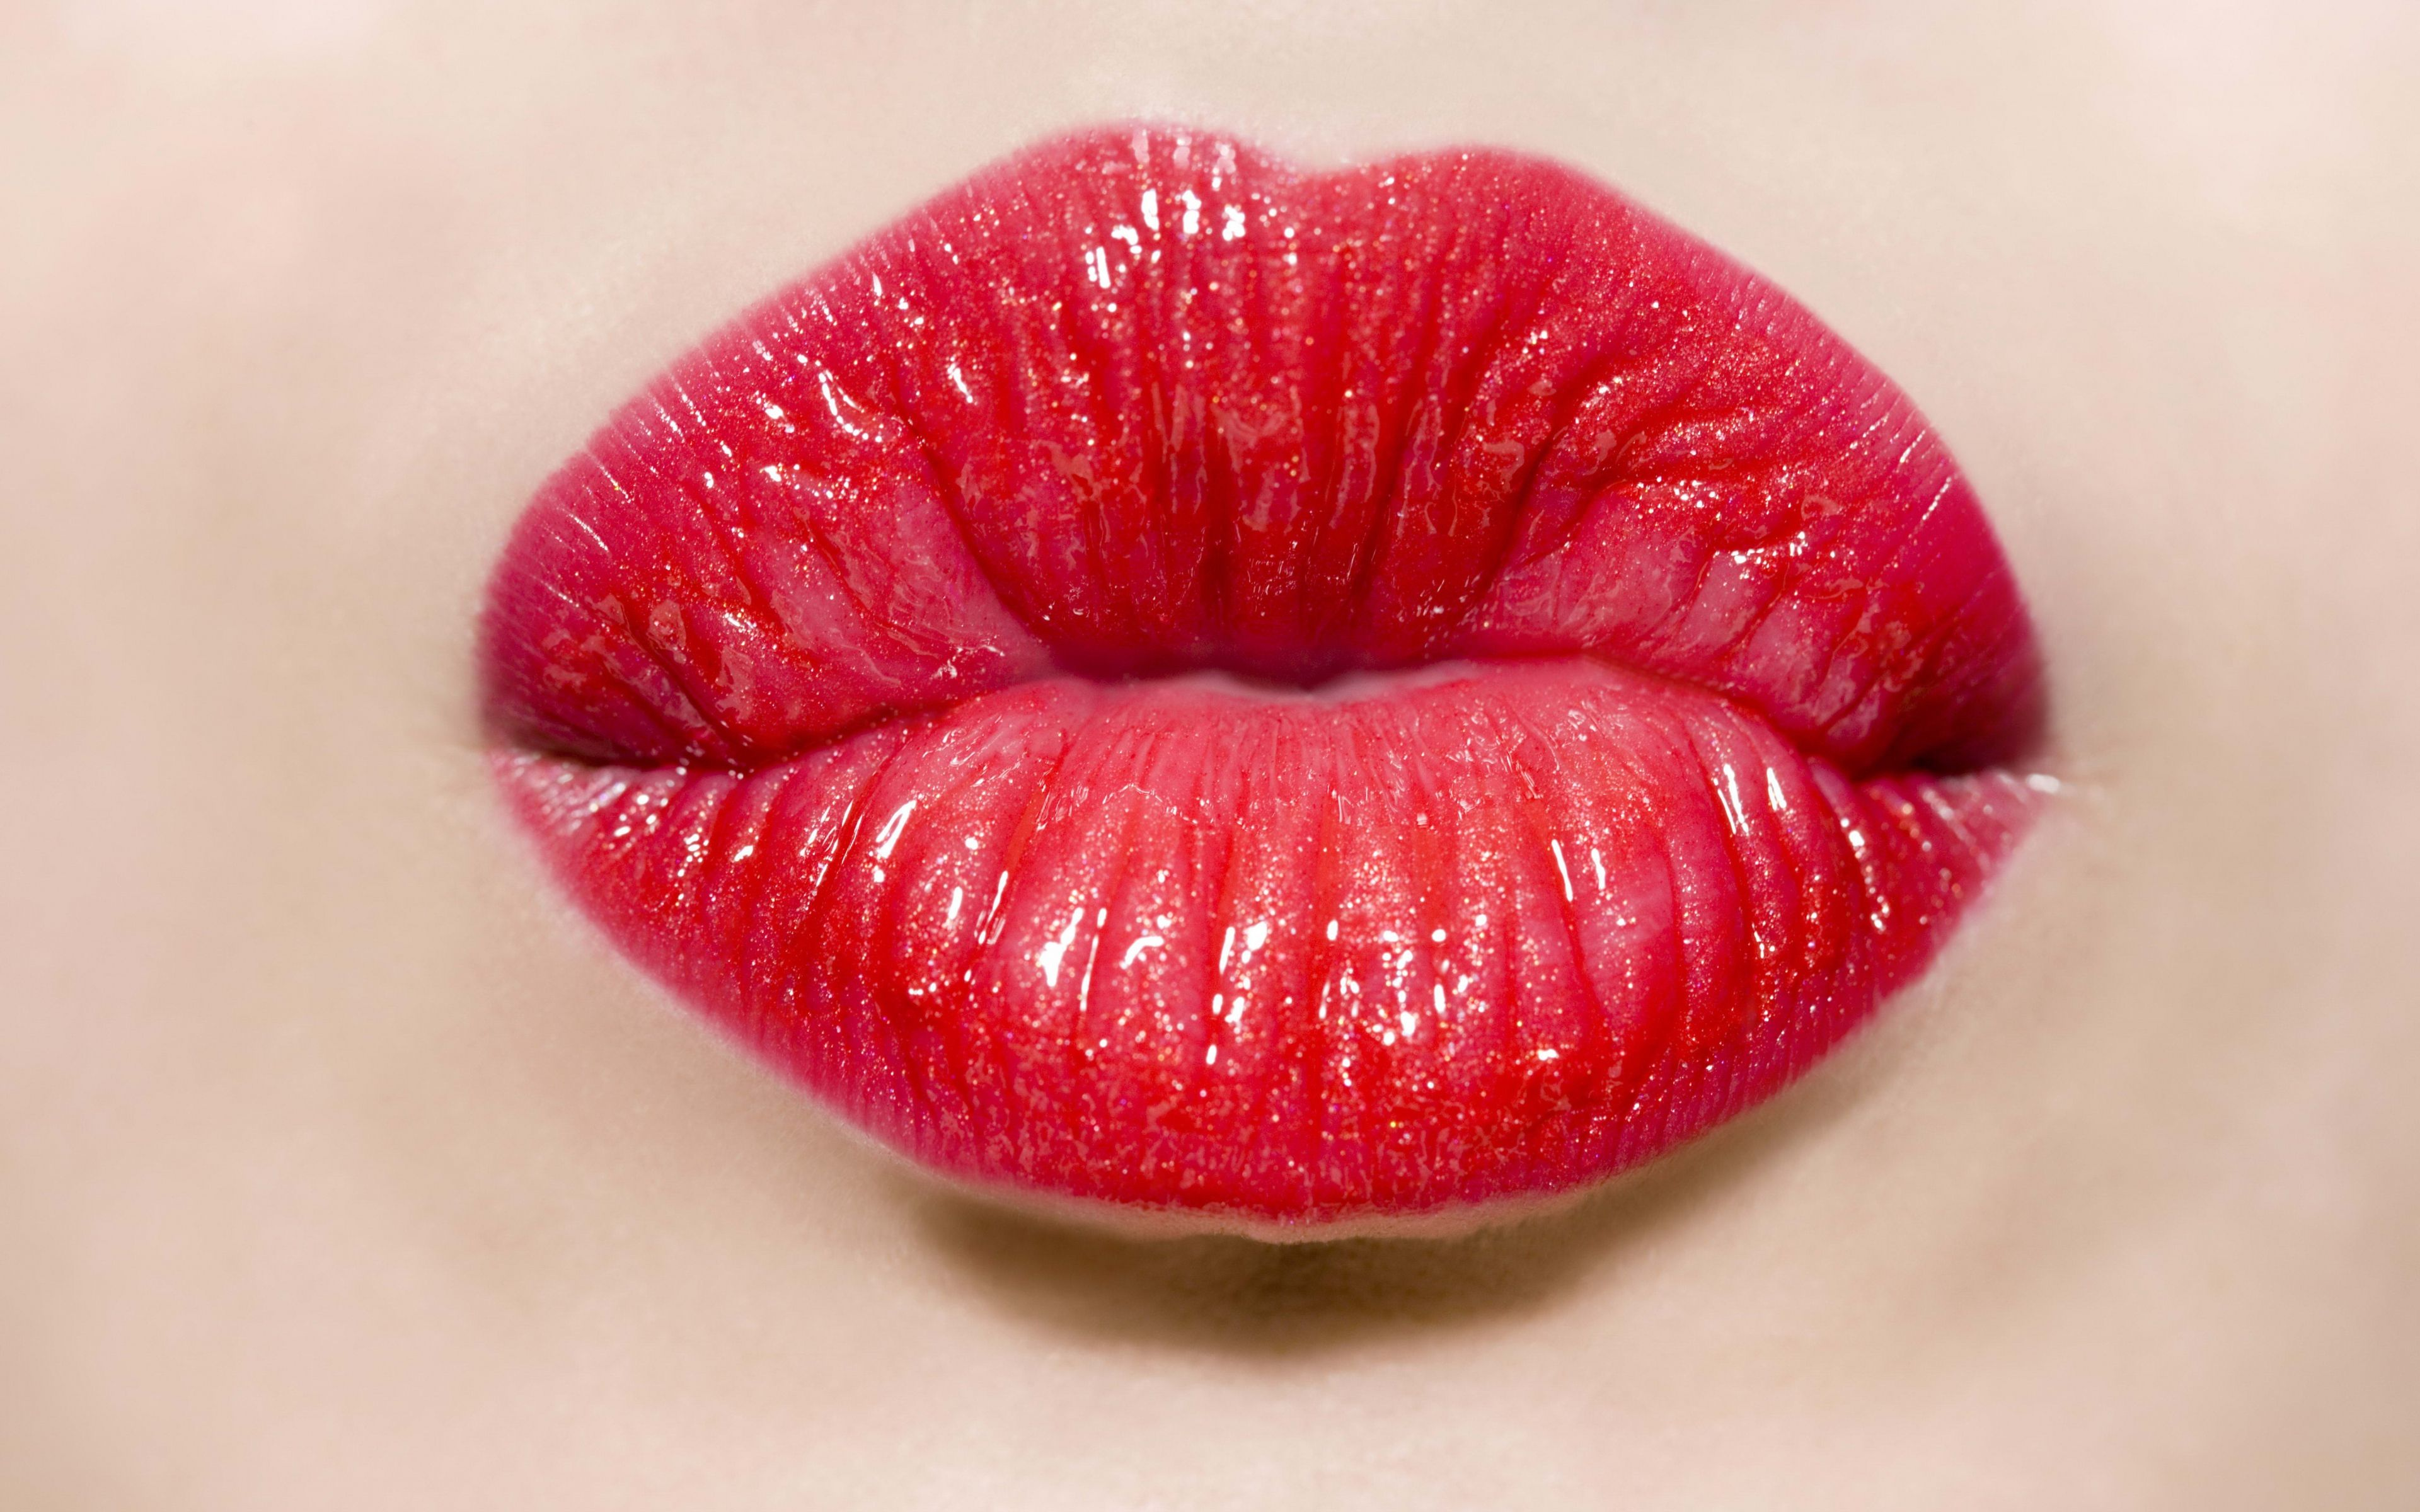 Lops mobili ~ Lips kiss images sp31 4k ultra hd wallpapers for desktop and